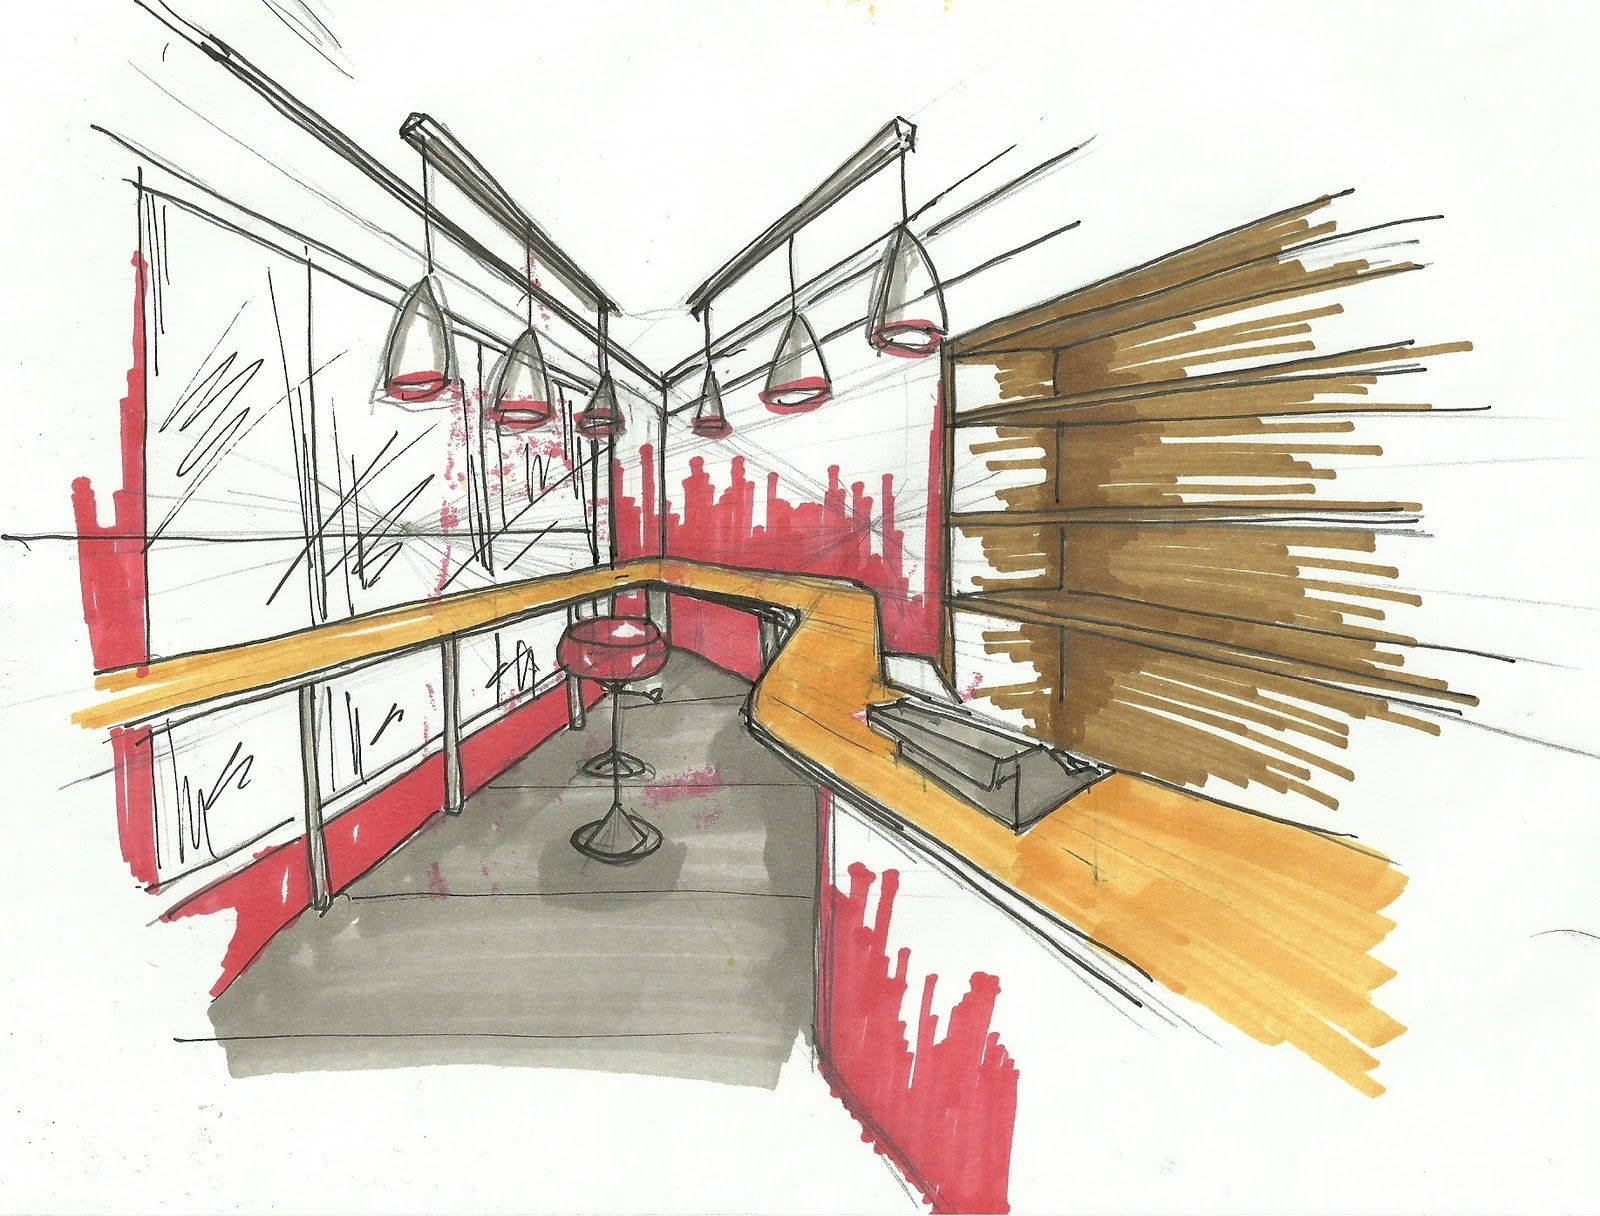 architecture interior design sketches interior design my sketches for current project milk bar